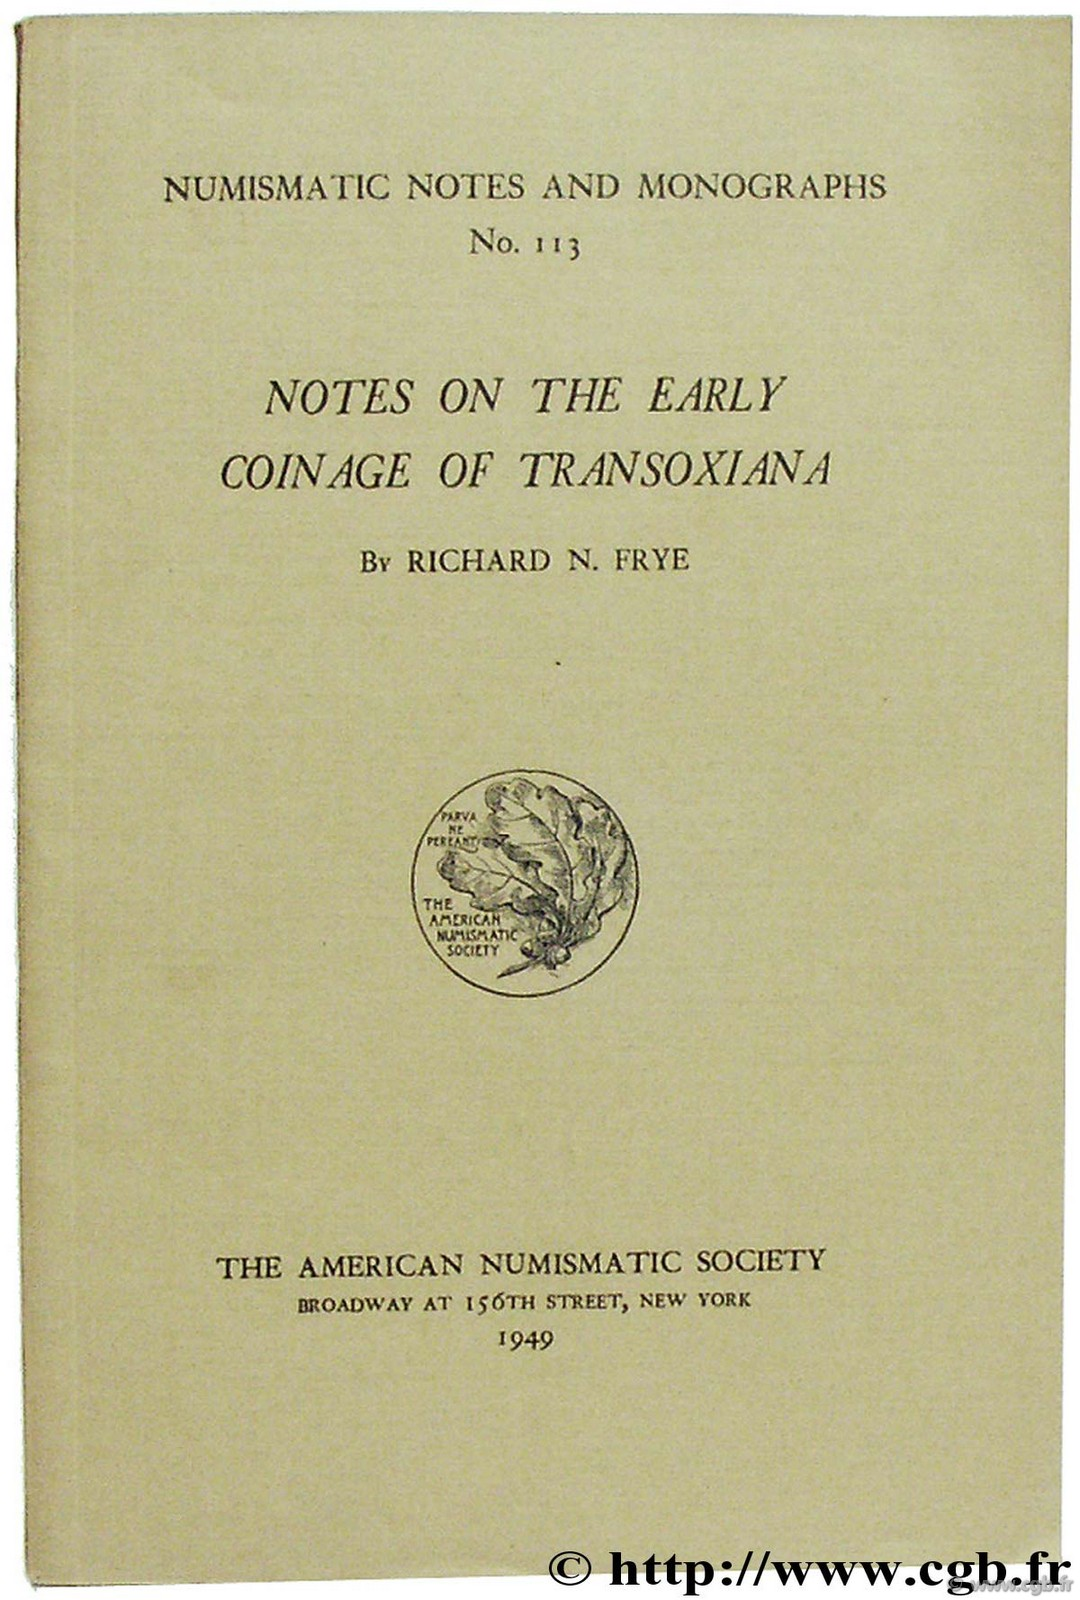 Note on the Early Coinage of Transoxiana, NNM n° 113 FRYE R.-N.